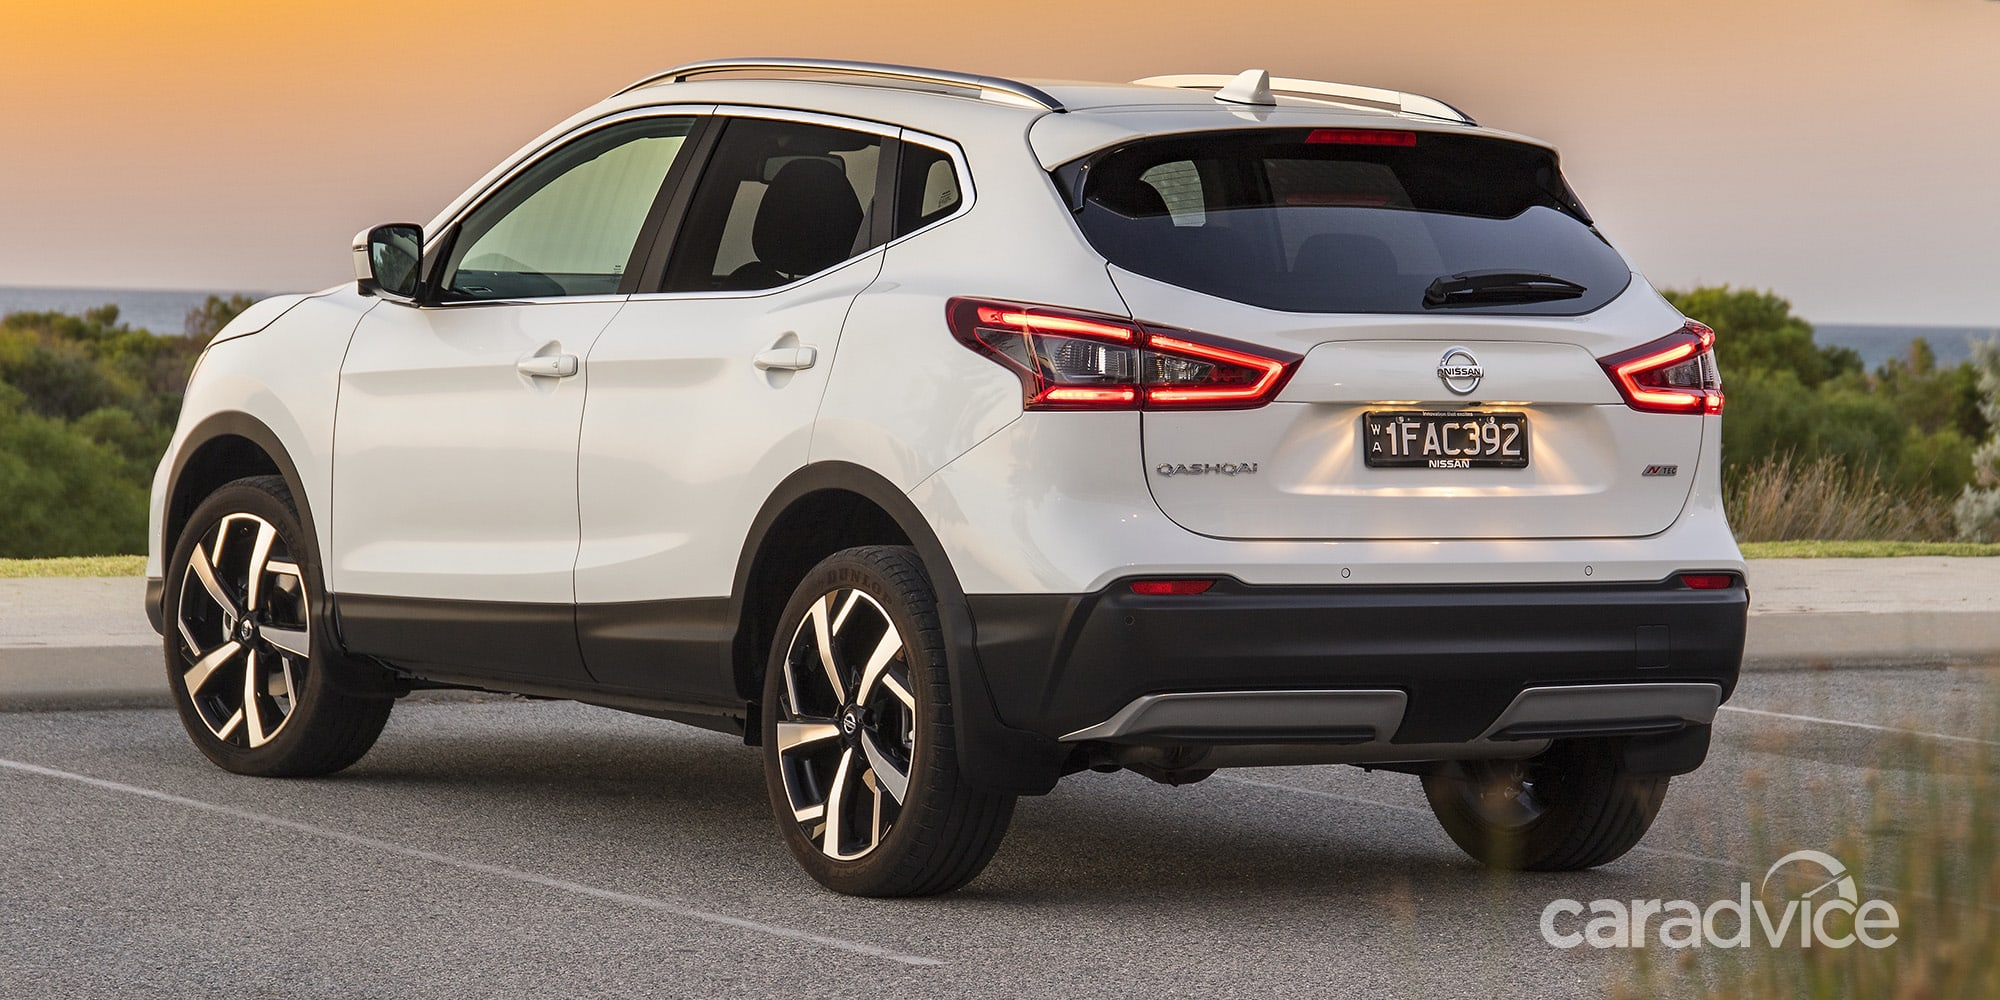 2018 nissan qashqai pricing and specs  caradvice